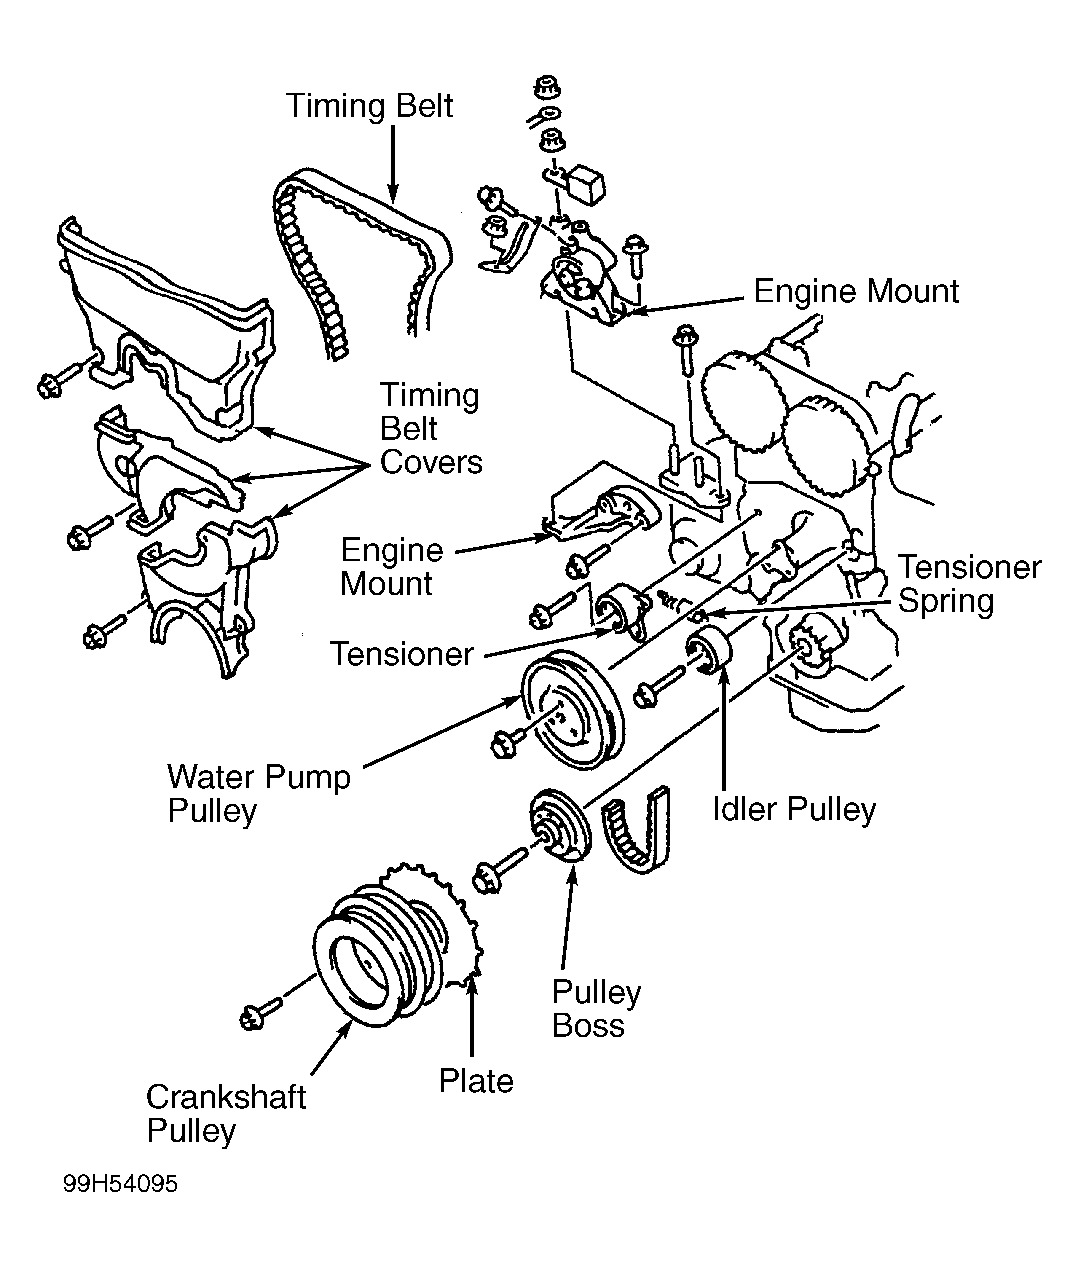 hight resolution of mazda protege 1 6 engine diagram wiring library rh 58 skriptoase de 2000 mazda protege engine sensor diagram 2001 mazda protege belt diagram